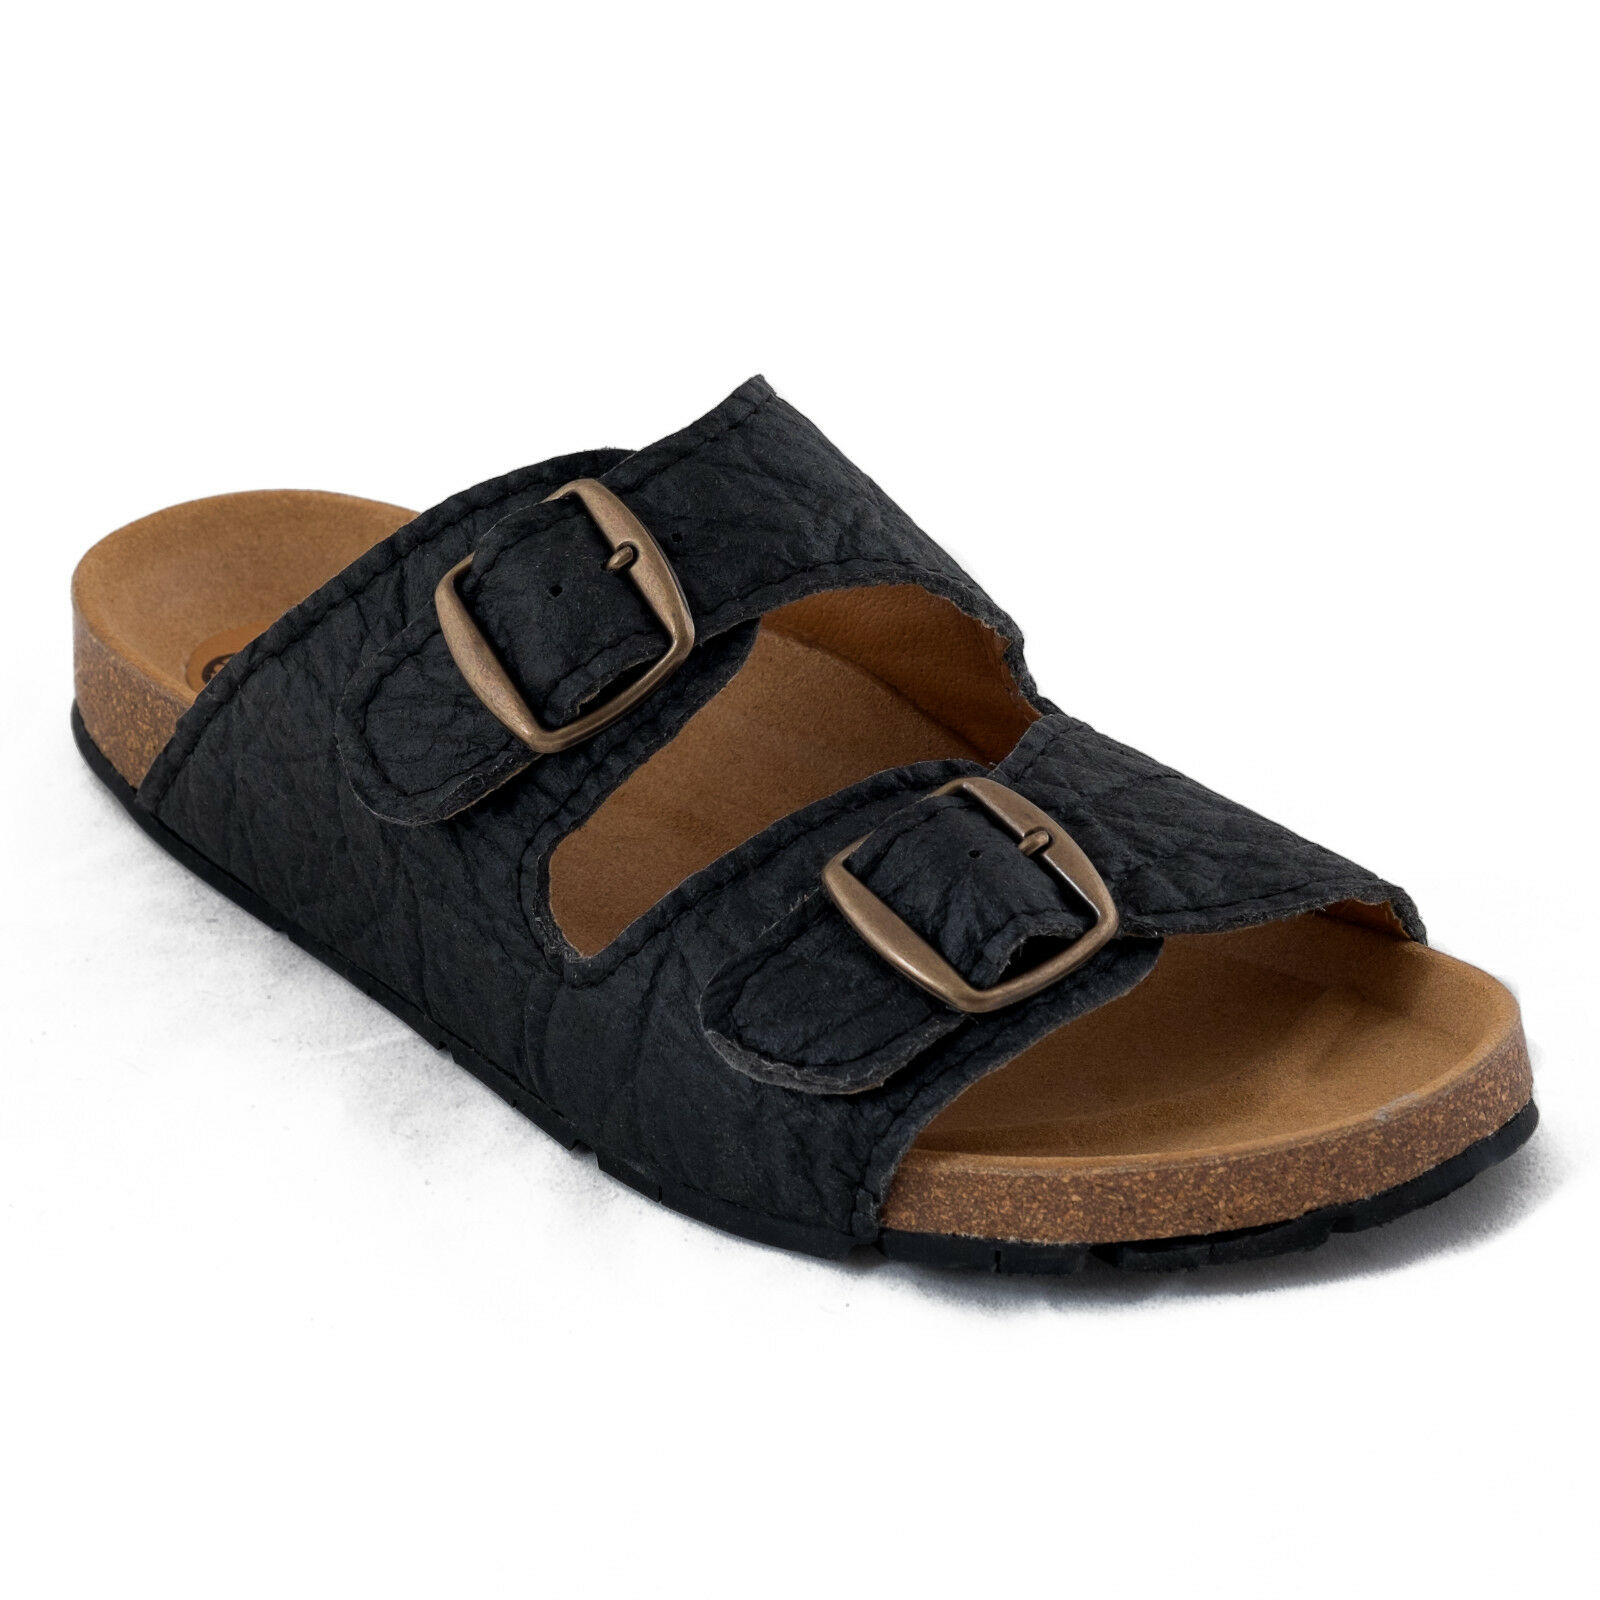 Two-Strapped Vegan Sandal Organic Piñatex Metal Buckle Ecological Breathable